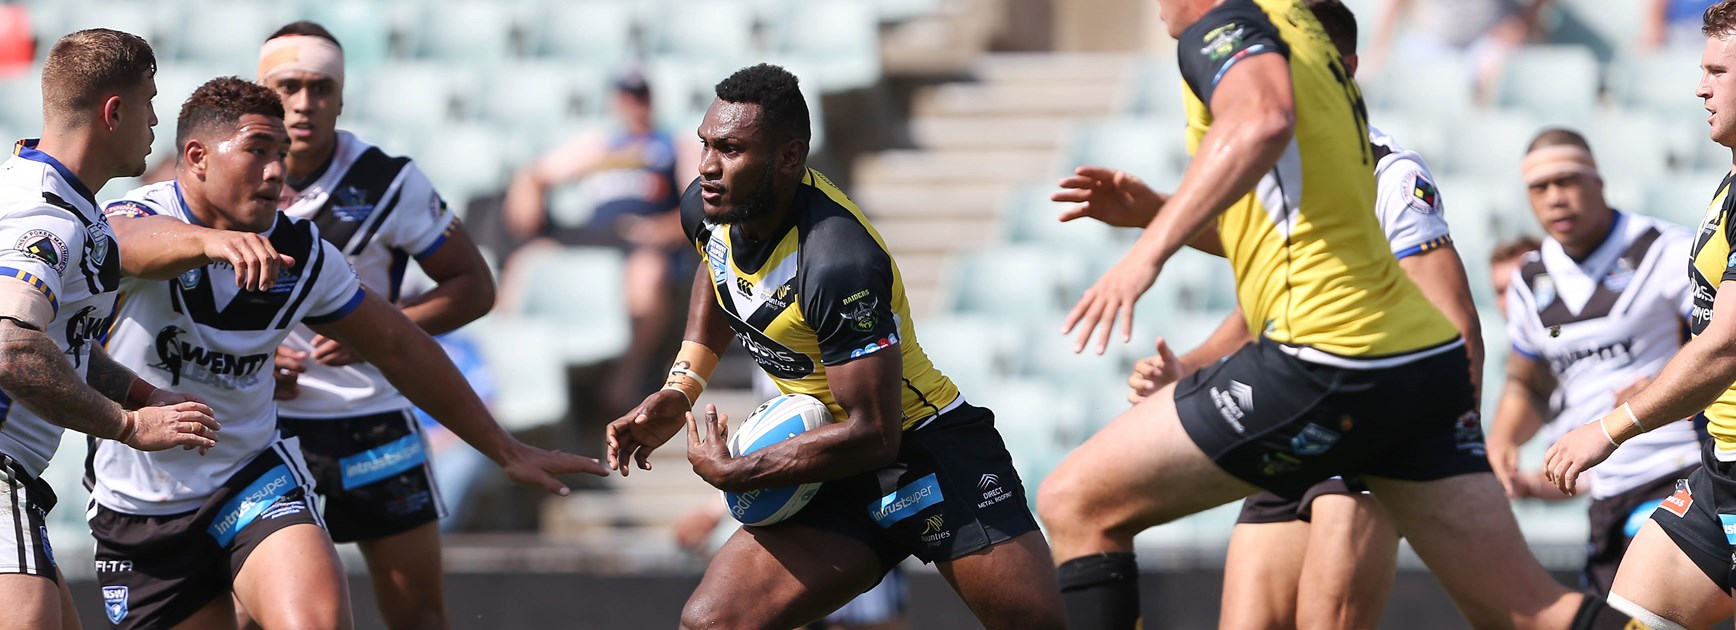 Players struggling with Ottio death after training collapse